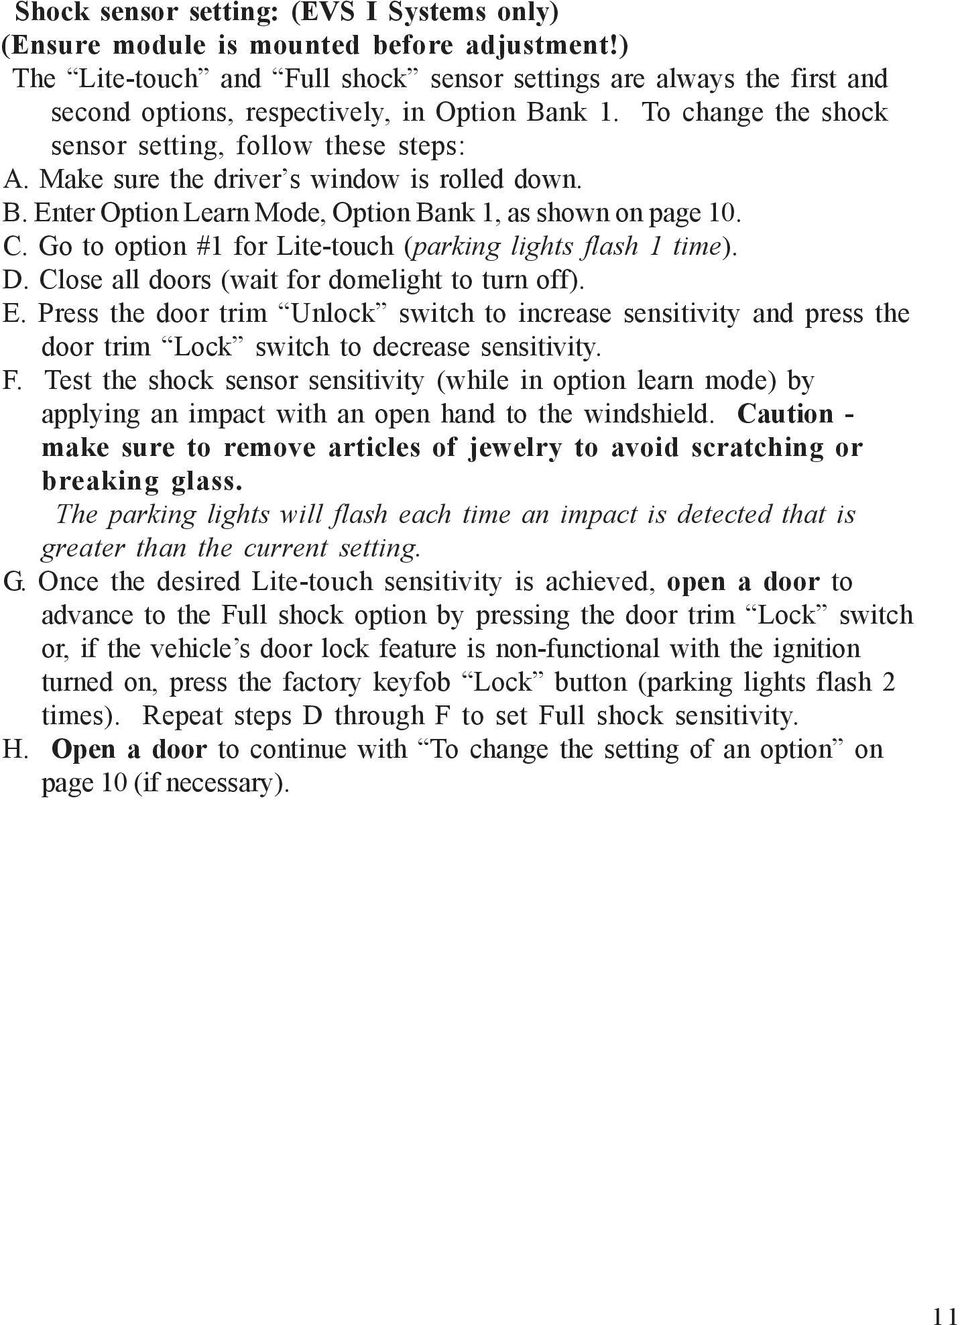 Make sure the driver s window is rolled down. B. Enter Option Learn Mode, Option Bank 1, as shown on page 10. C. Go to option #1 for Lite-touch (parking lights flash 1 time). D.